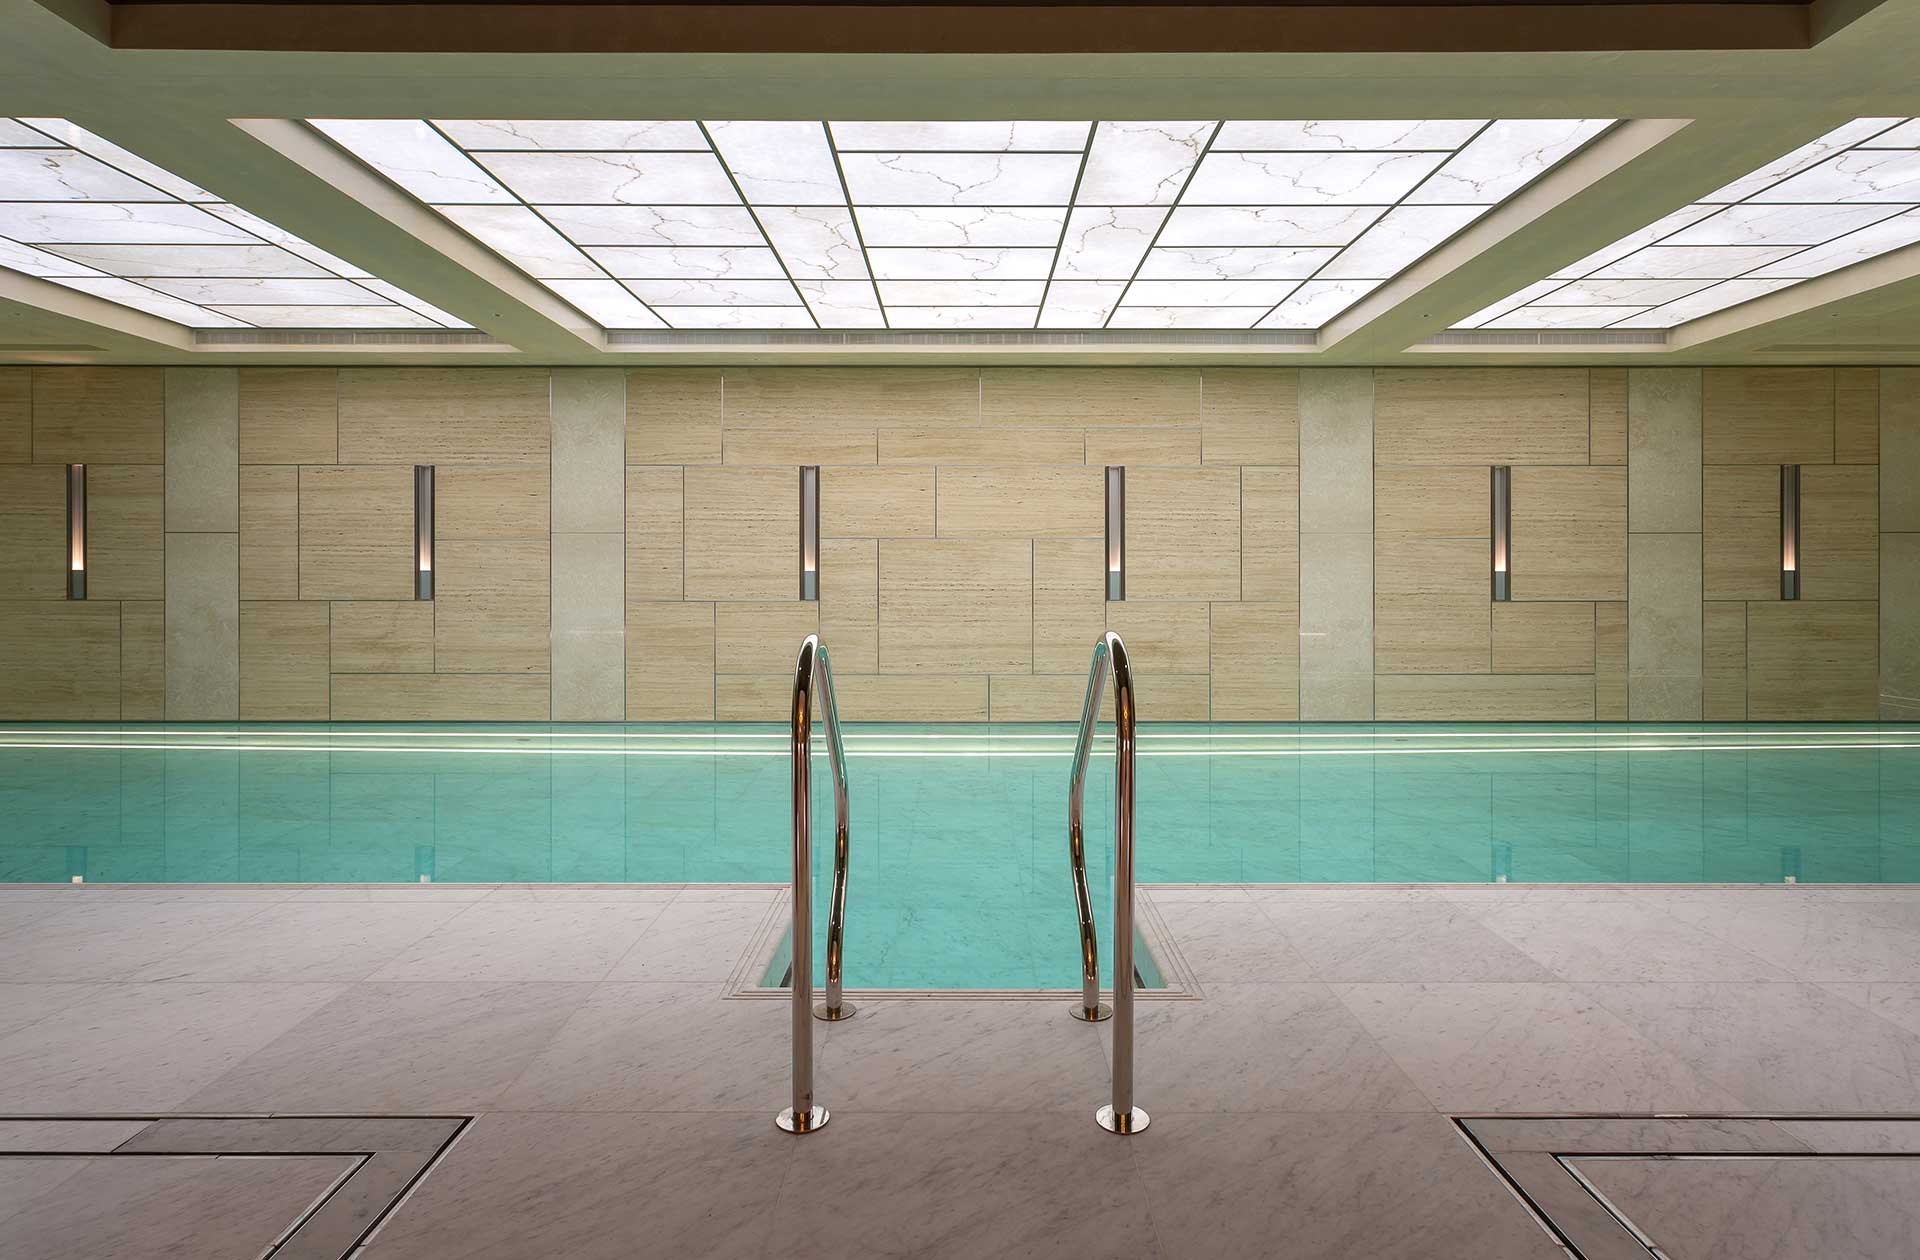 amberlite swimming pool ceiling